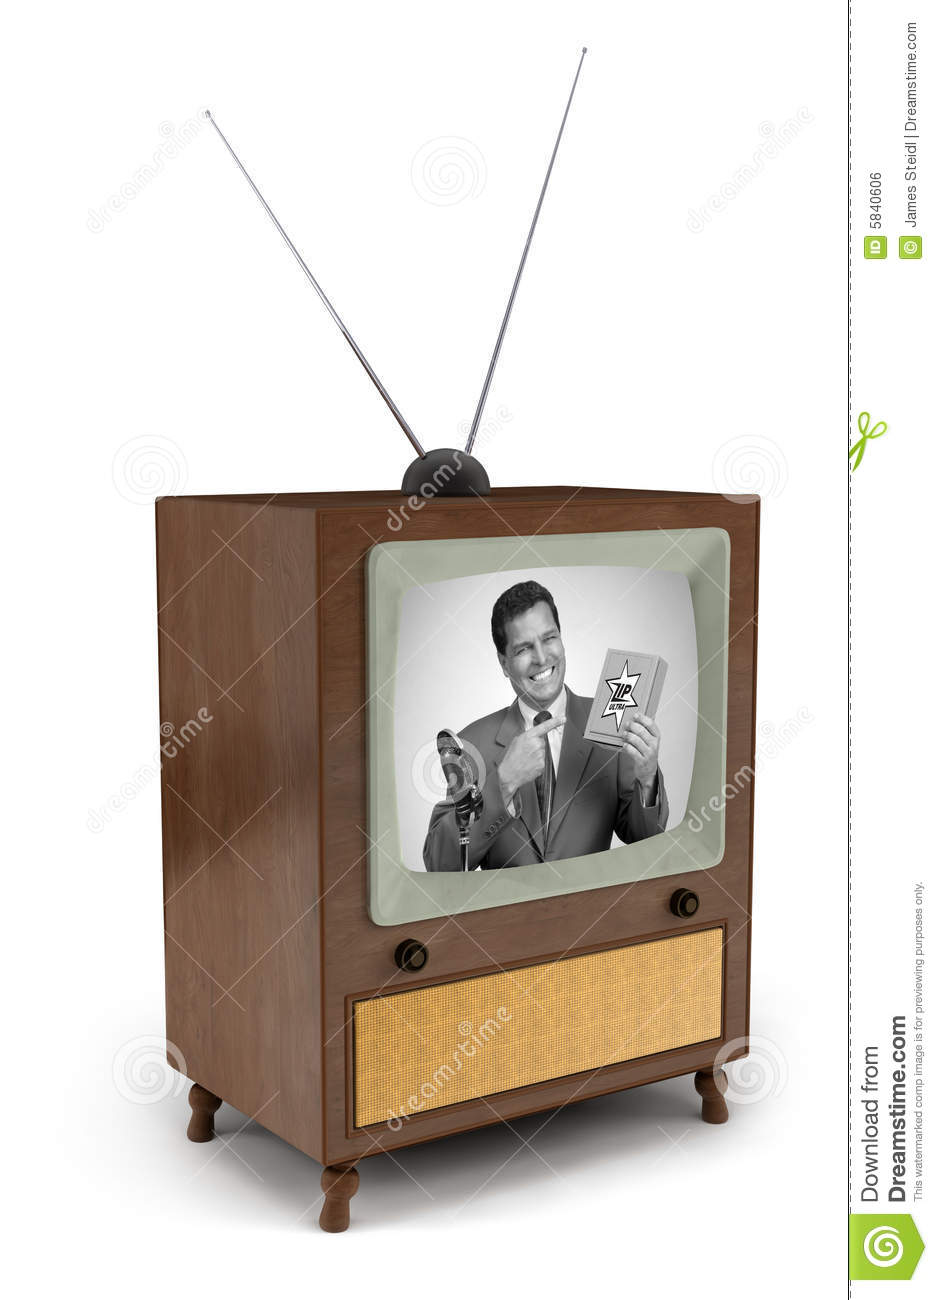 50s tv commercial stock photo image of media 1950s infomercial